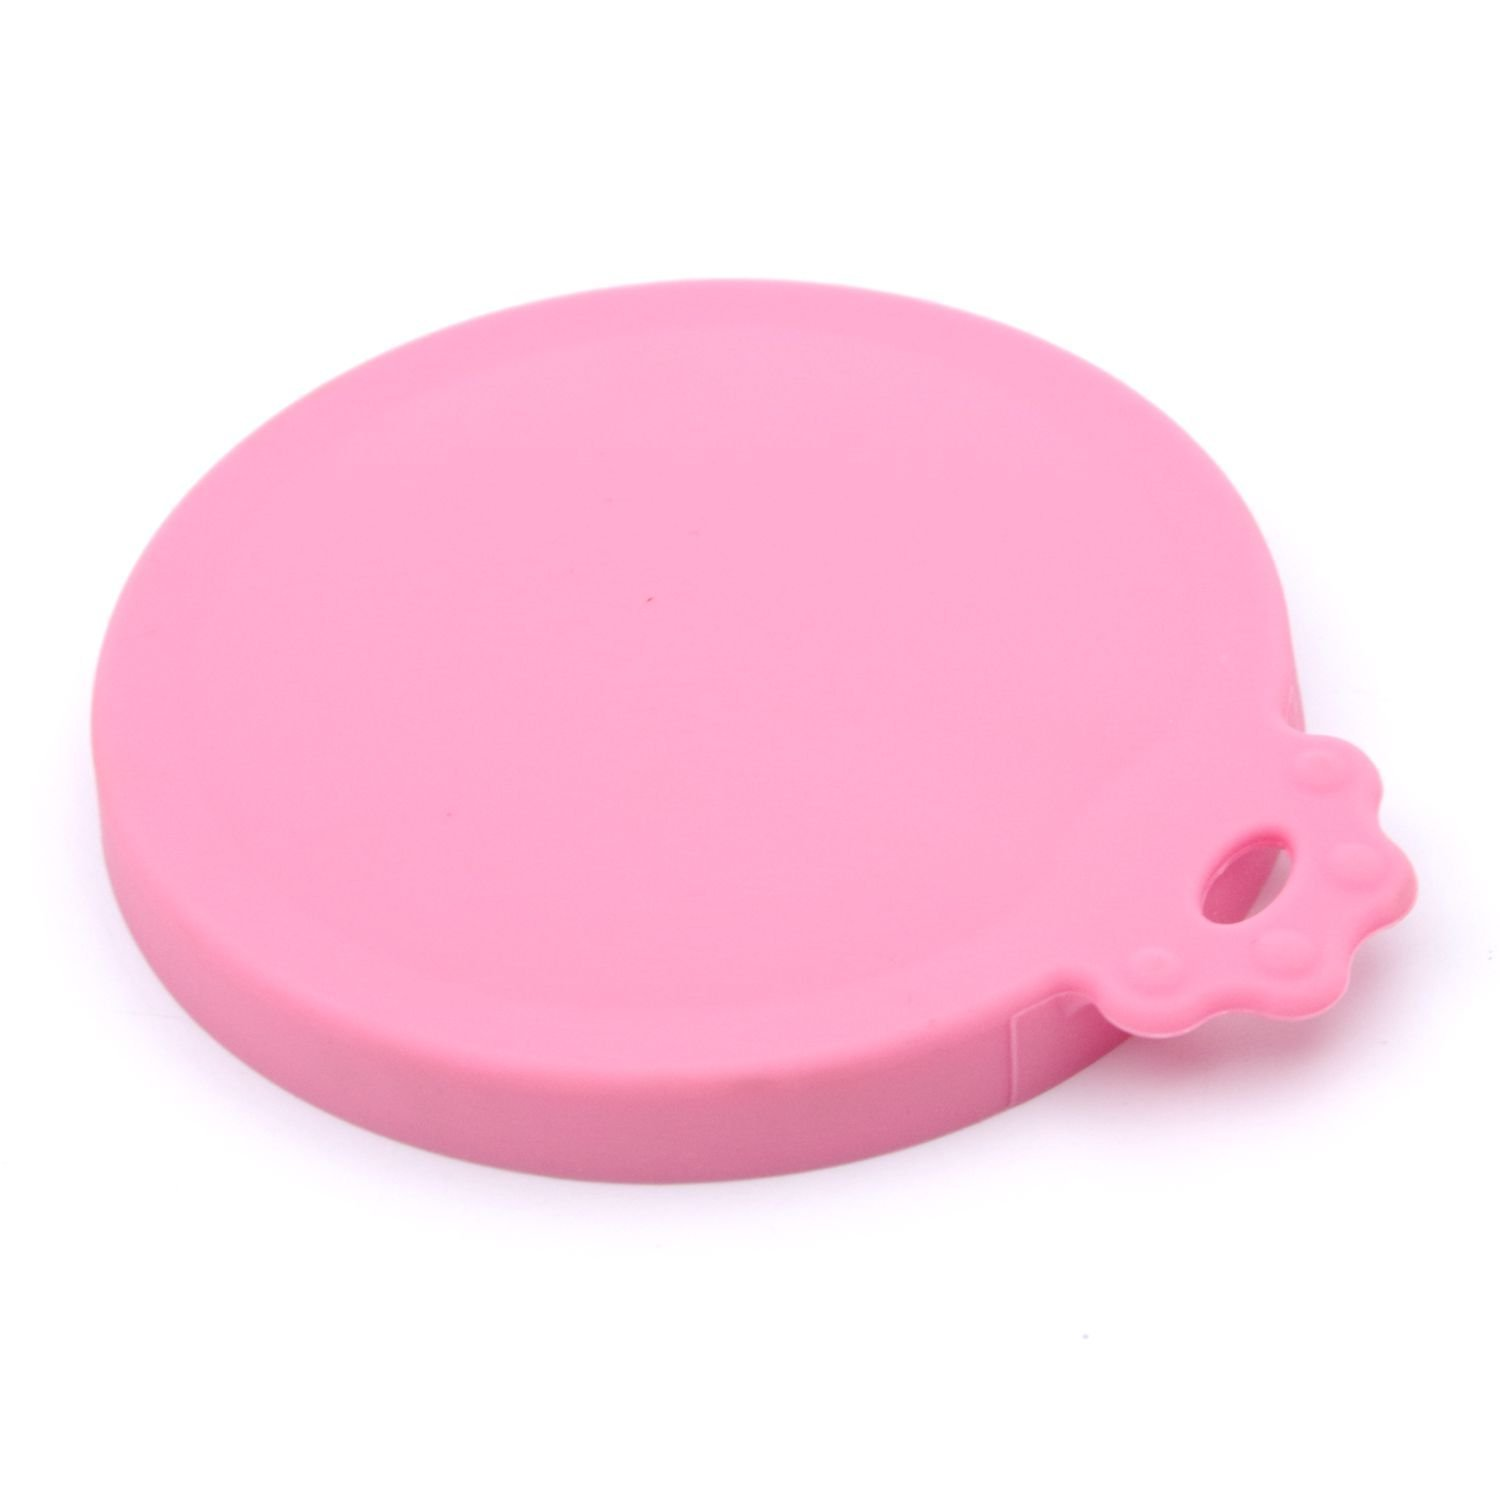 Super Design Silicone Can Cover for Multiple Sizes Pink